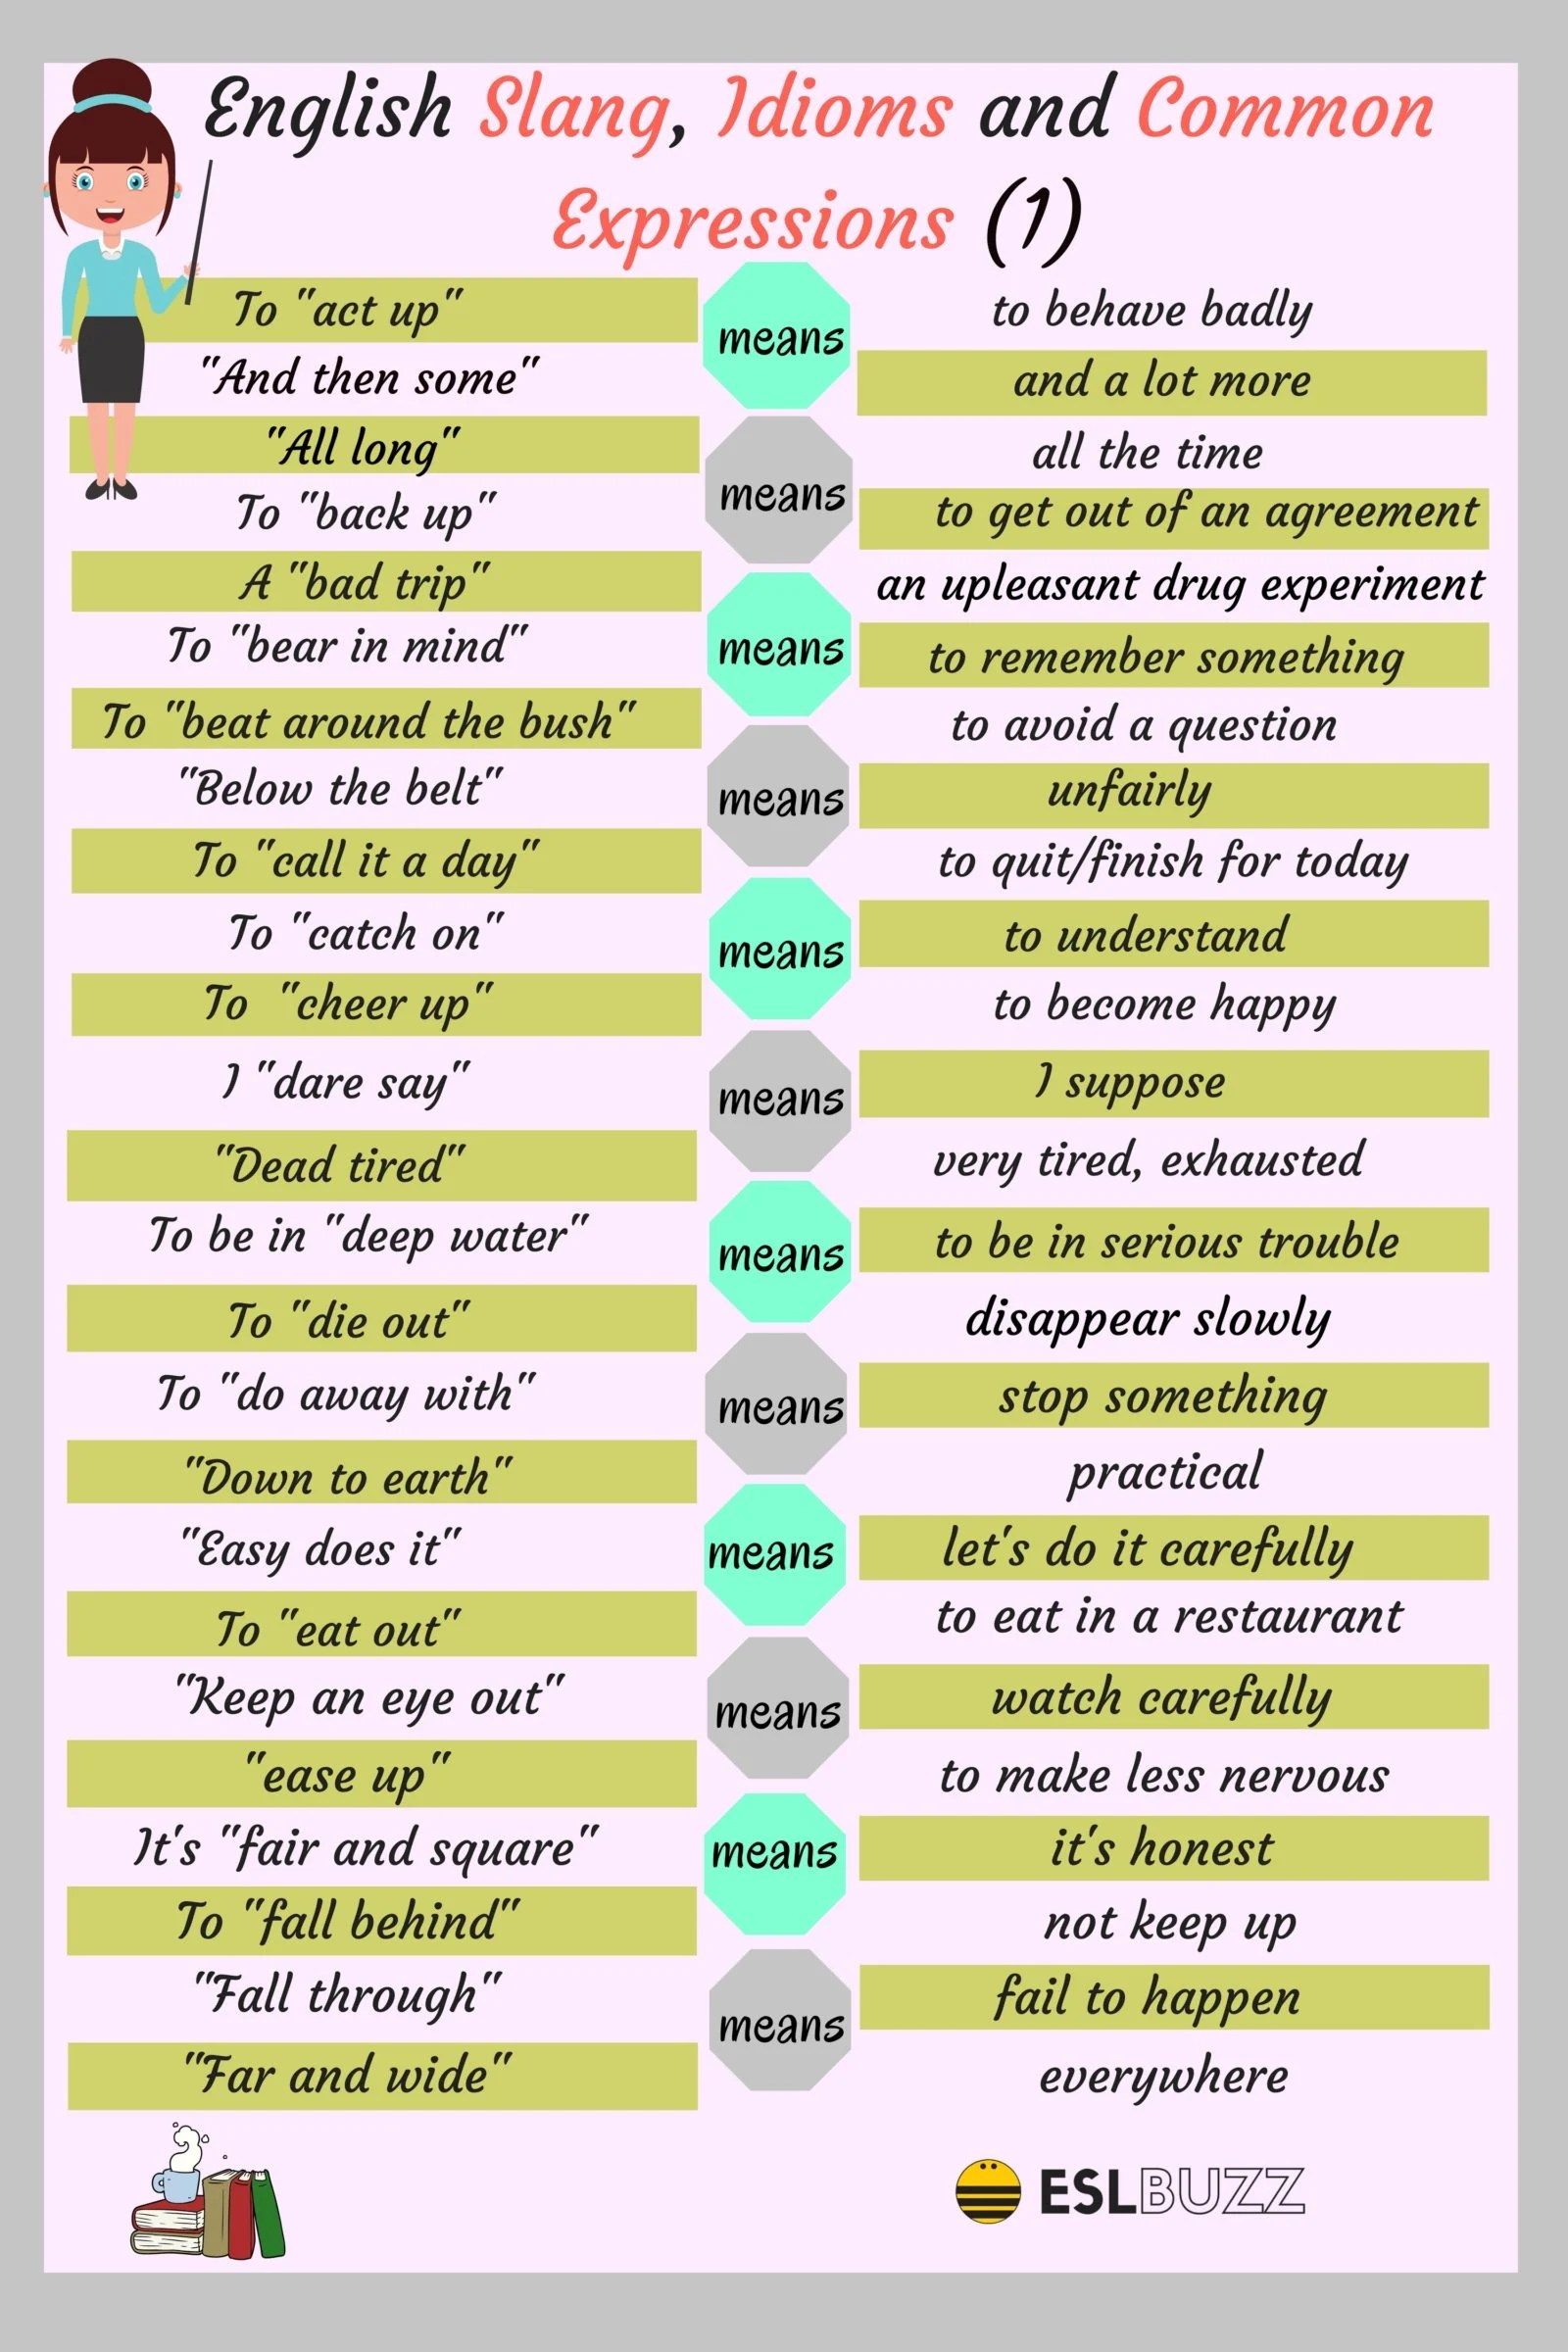 100 Slang Words Idioms And Common Expressions In English